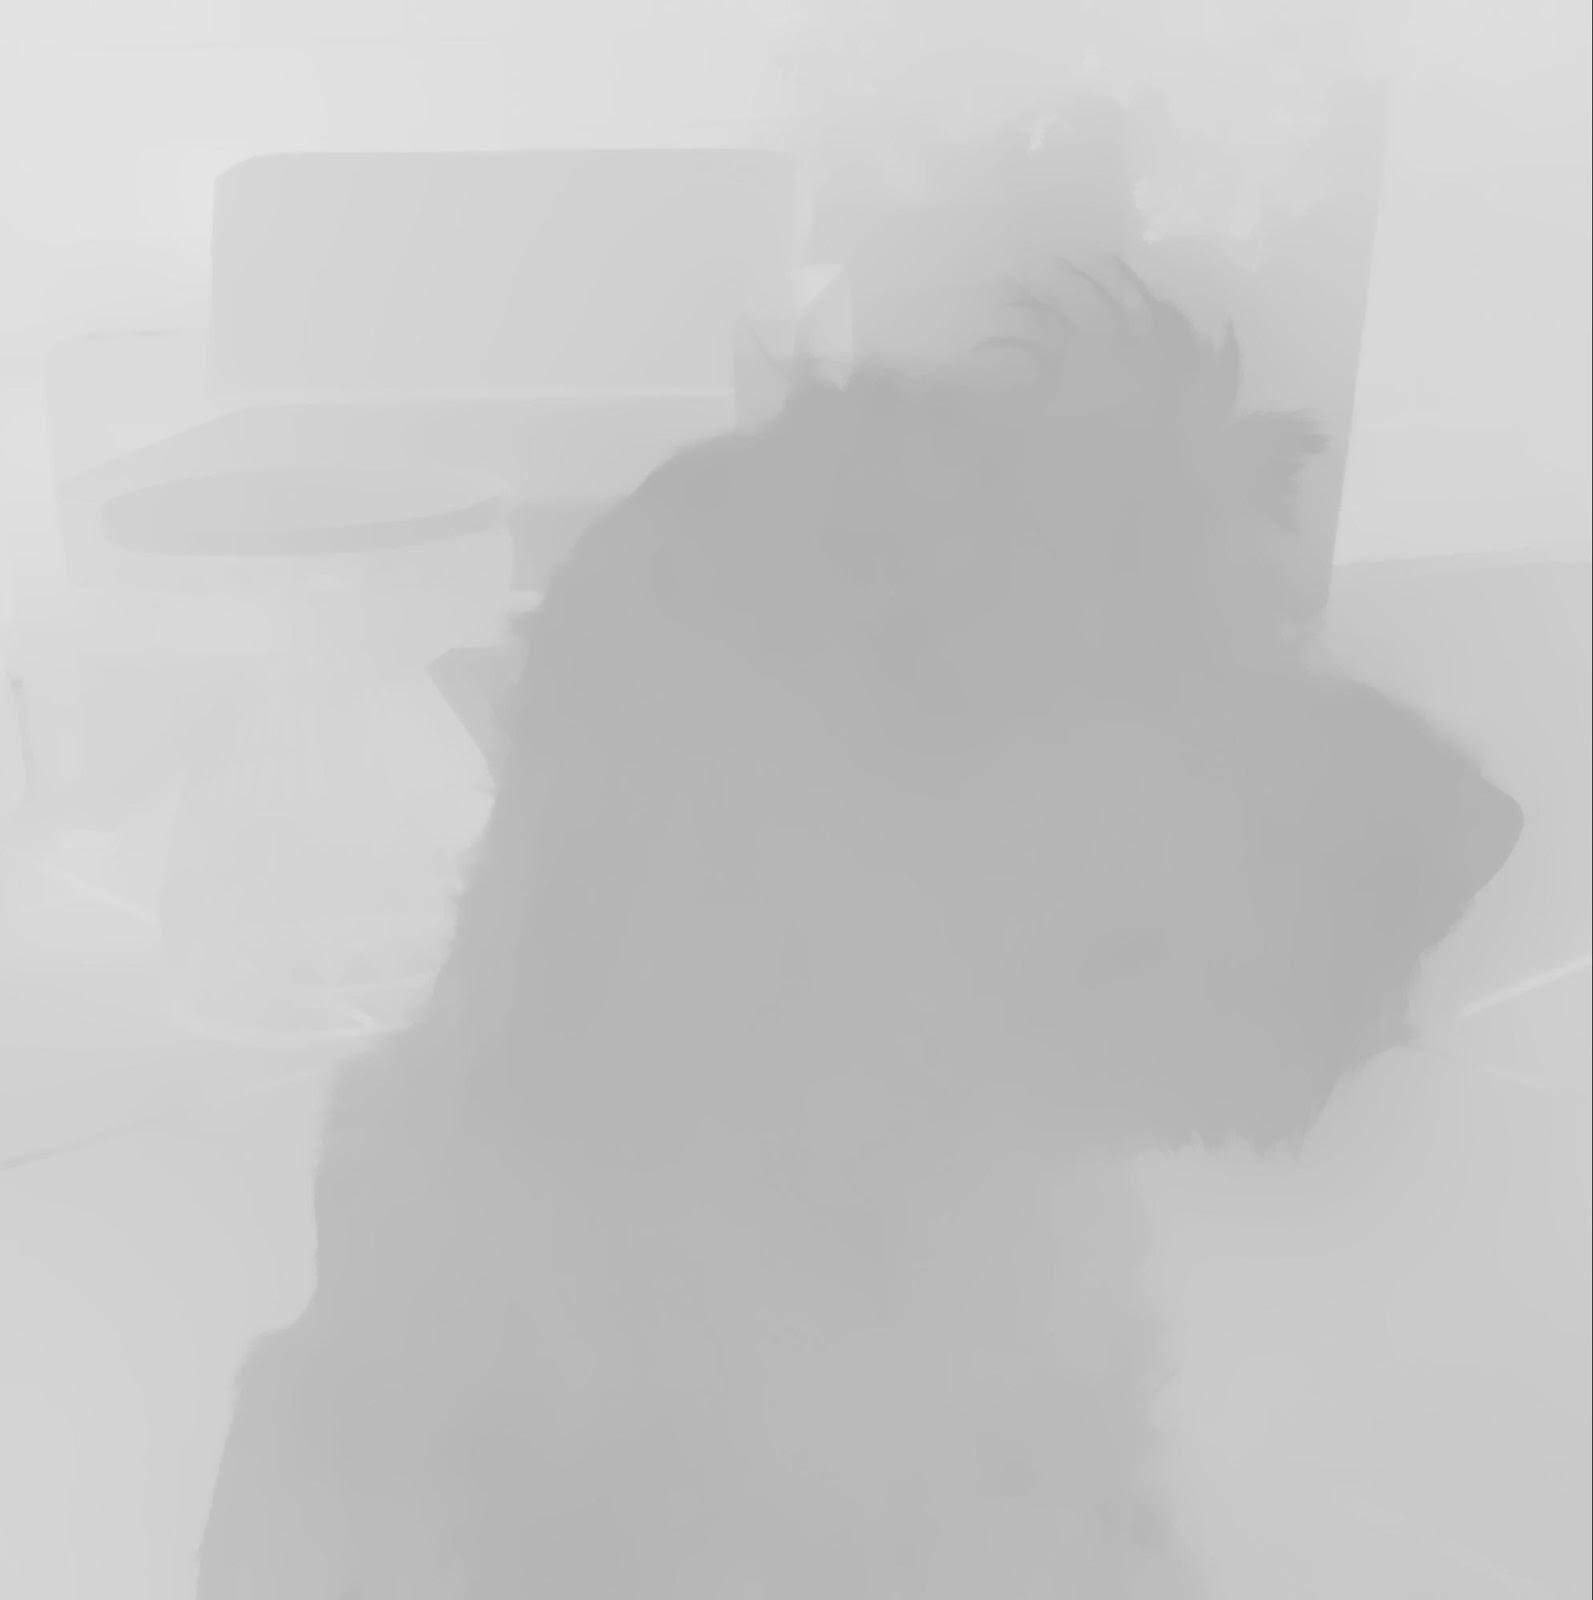 image of a shaggy dog's profile in grayscale and blurred out